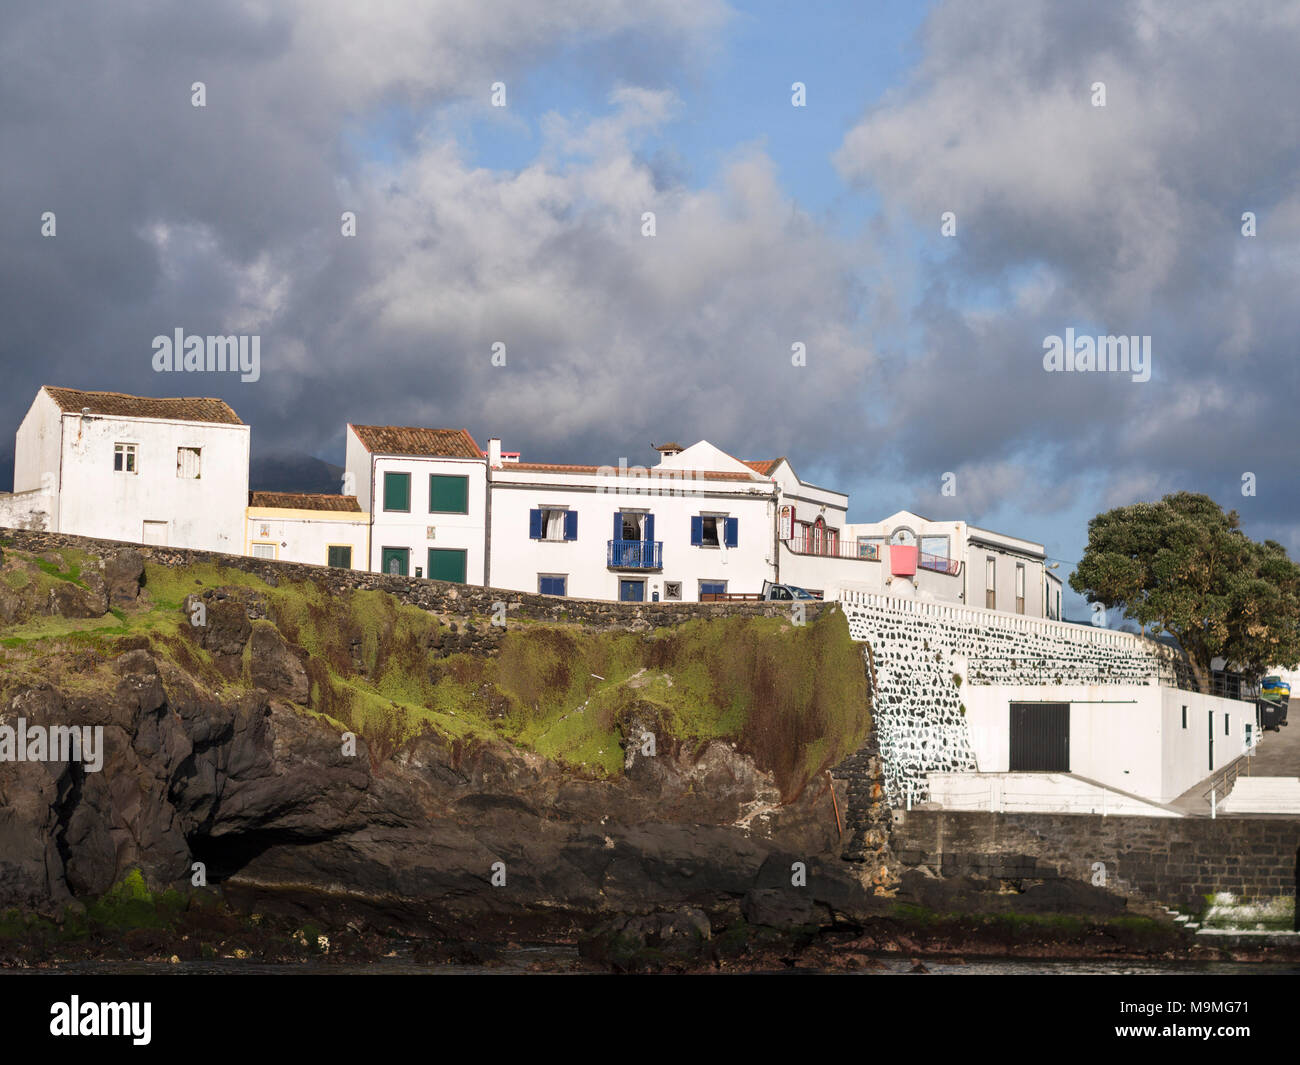 Whitewashed Coastal houses with Seawall: White houses line the coastal road and seawall around the port of Lagoa. Clouds pour in from the hills beyond. - Stock Image